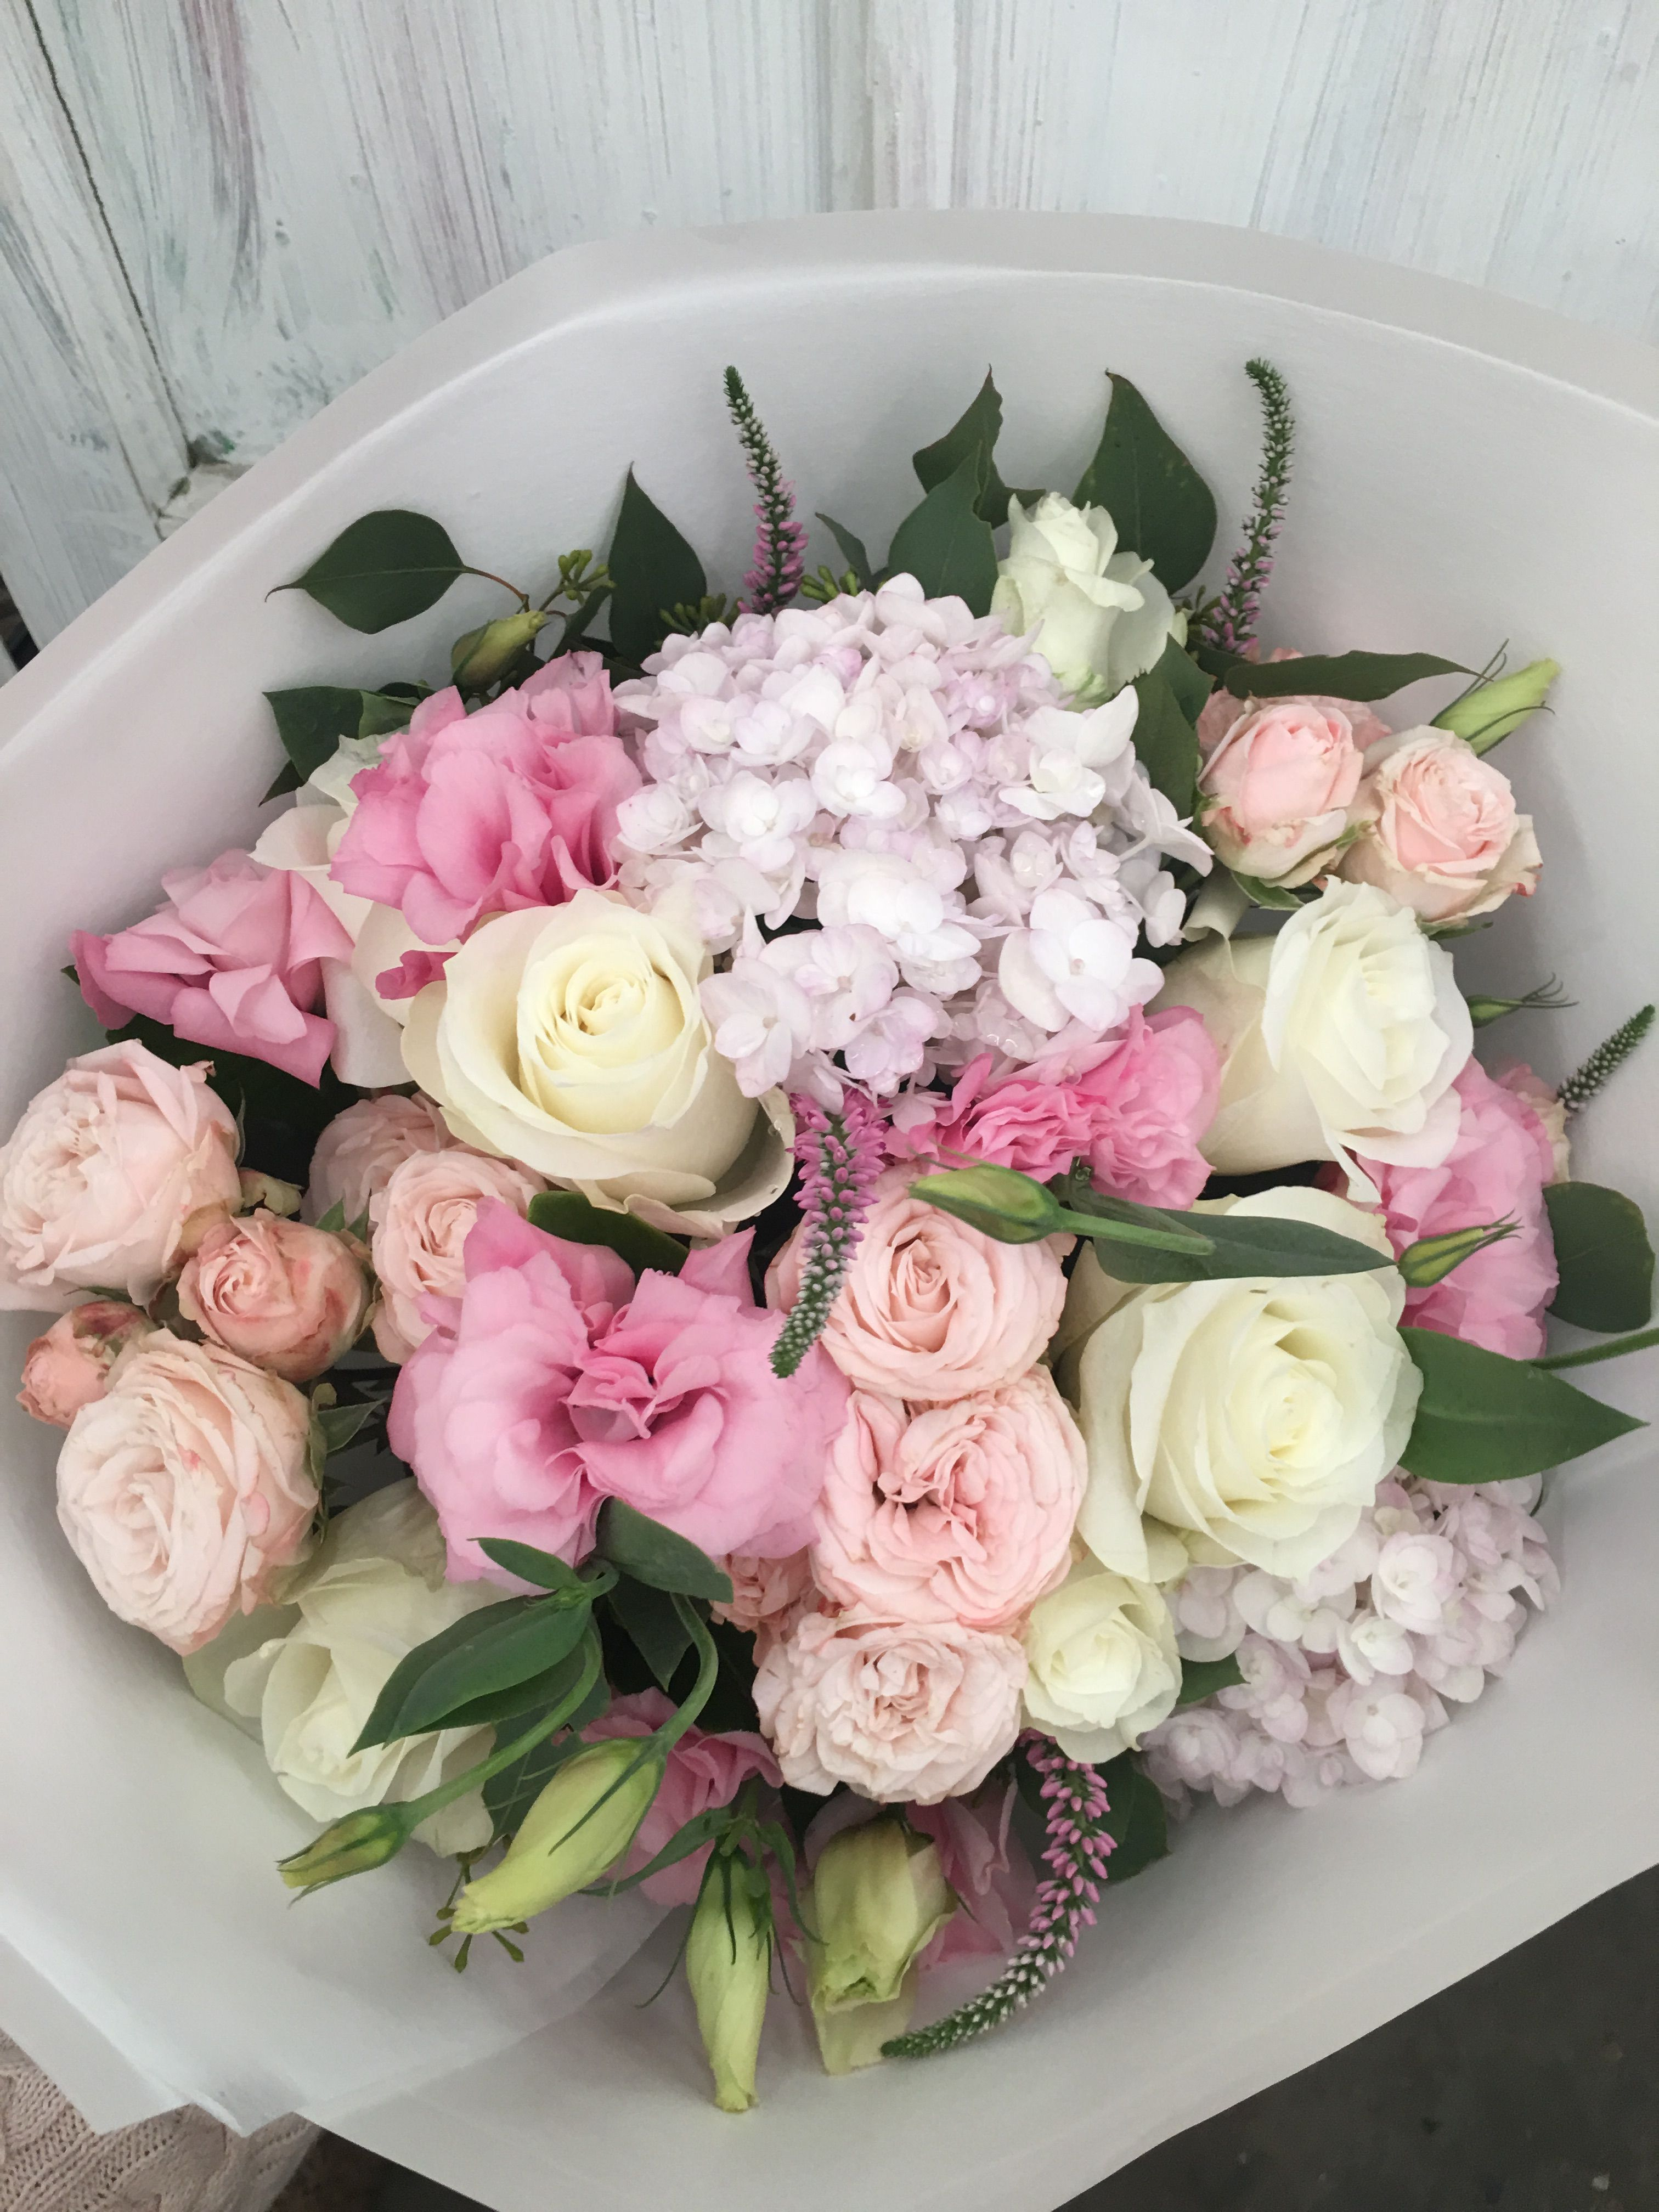 Pink and white are the best friends our best seller sydneyflorist pink and white are the best friends our best seller sydneyflorist pinkflowers izmirmasajfo